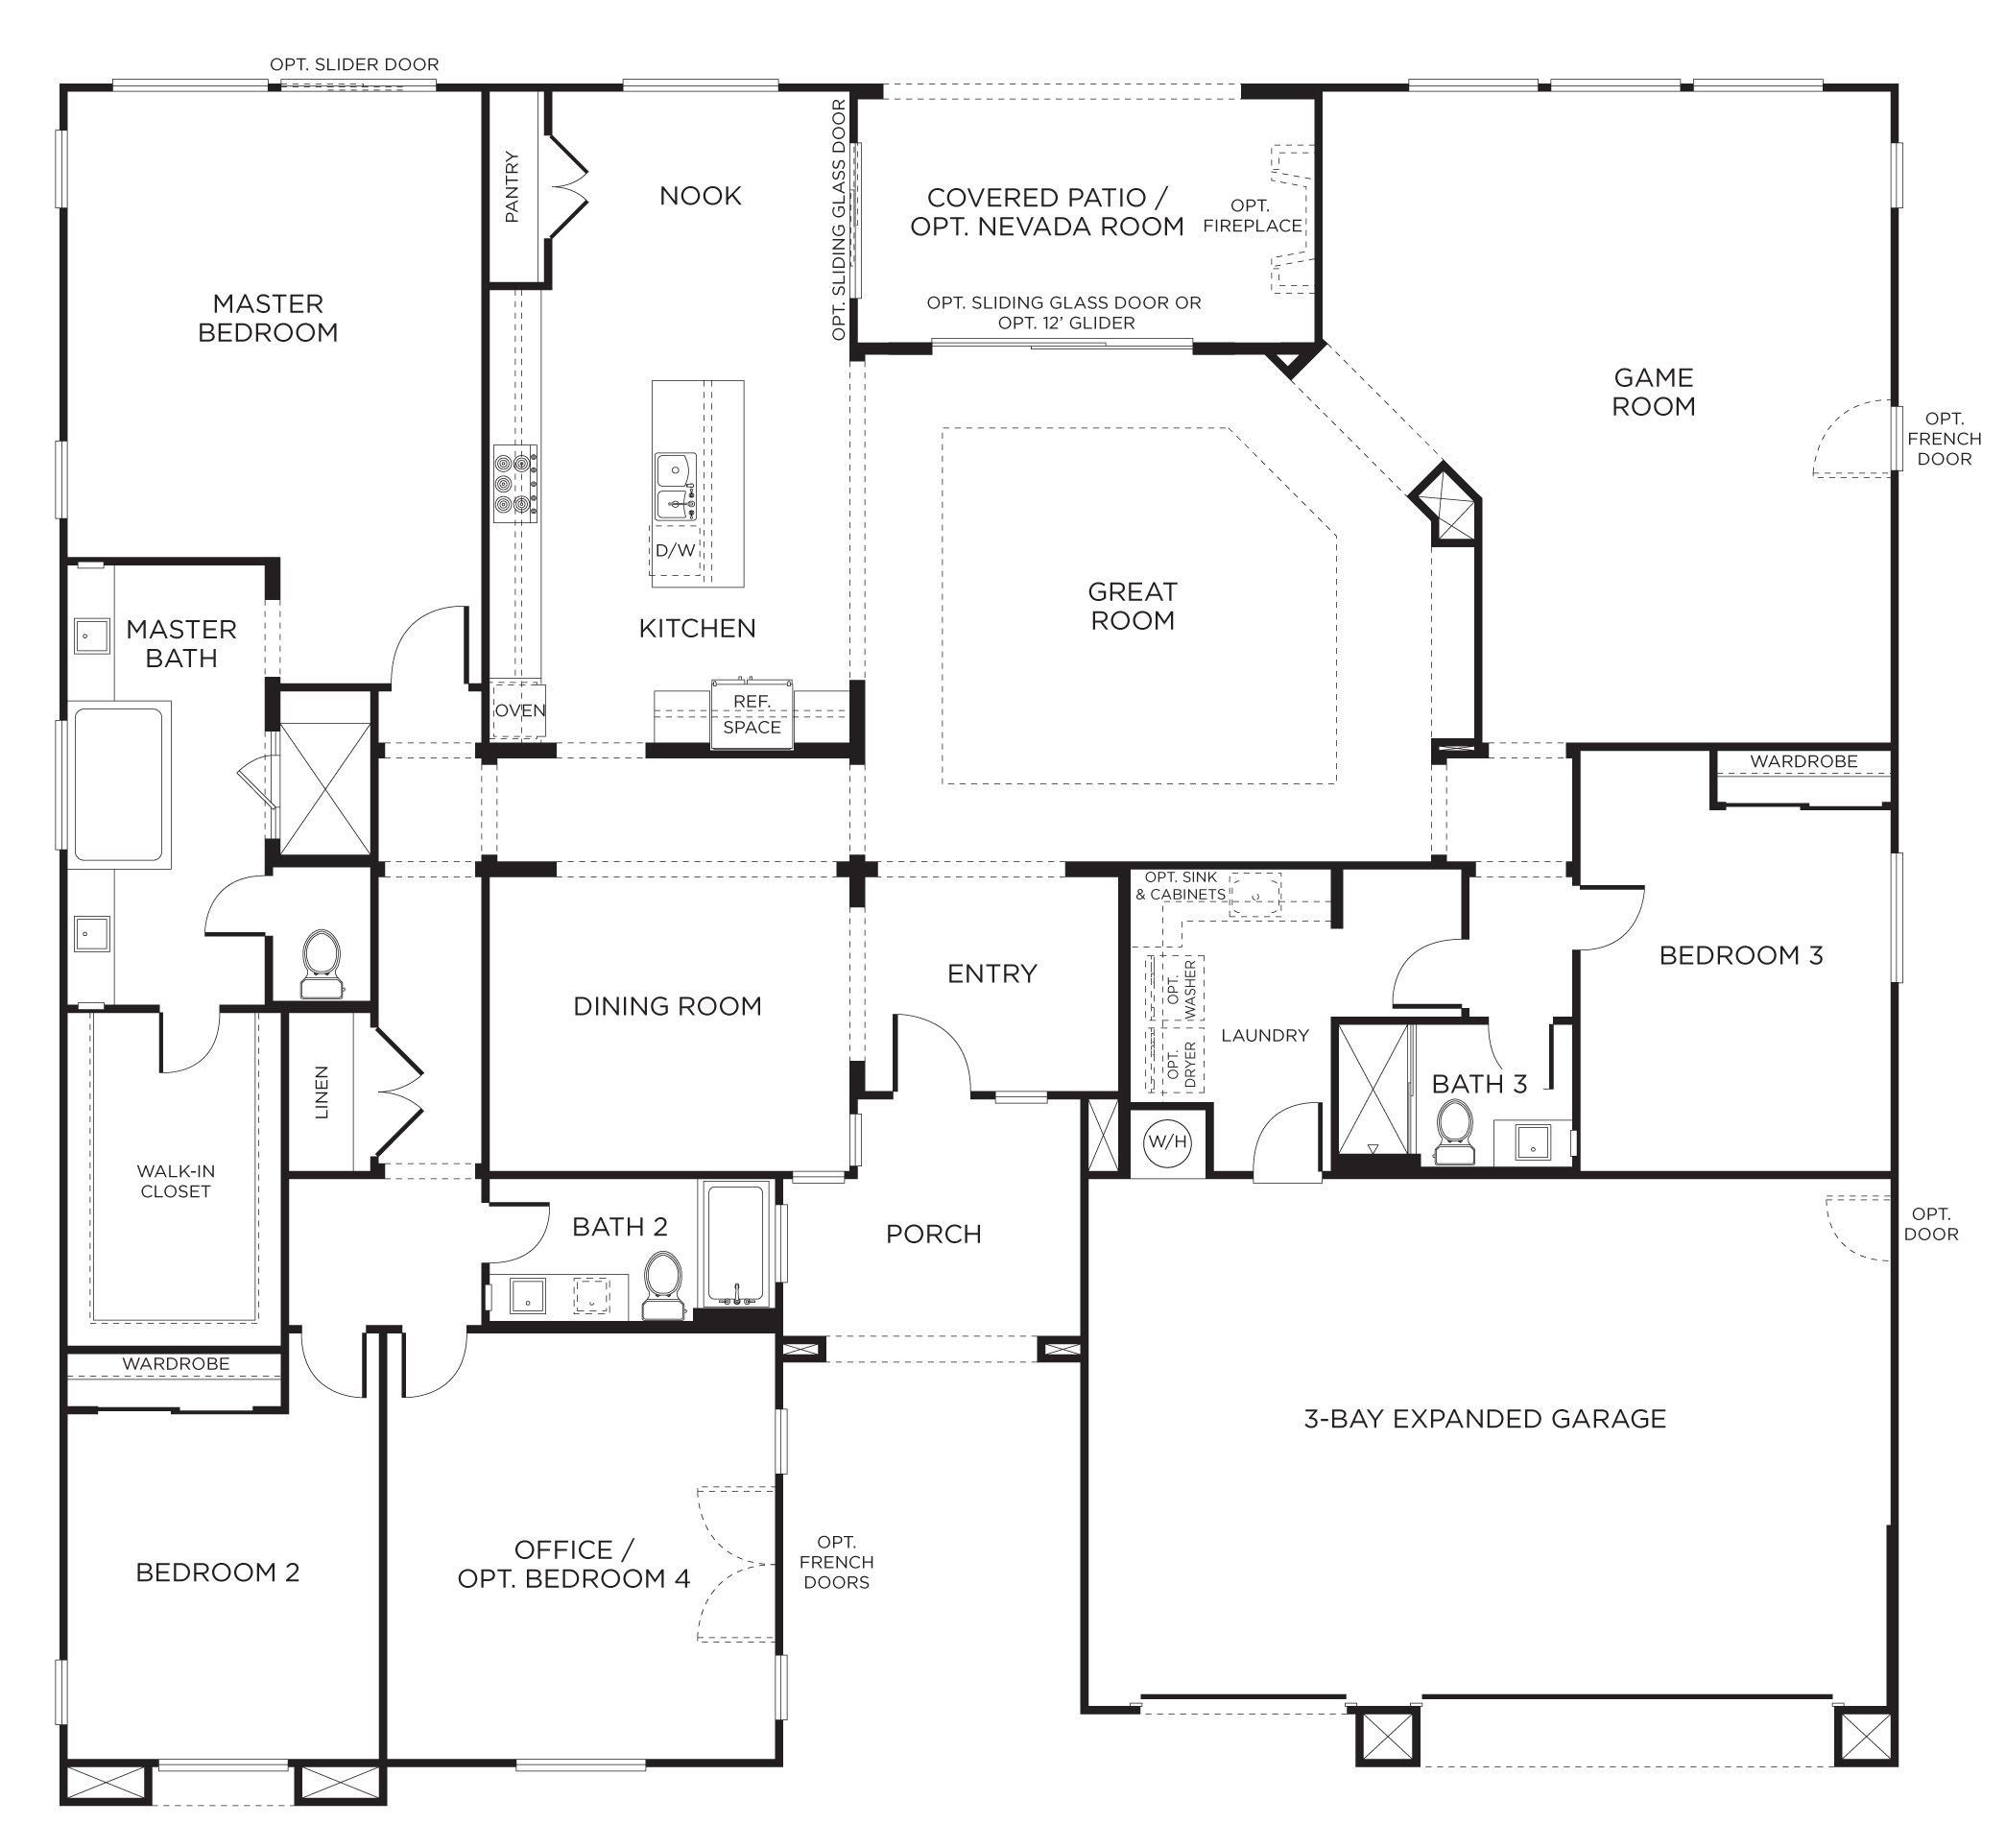 4 Bedroom House 1 Storey Plans Images